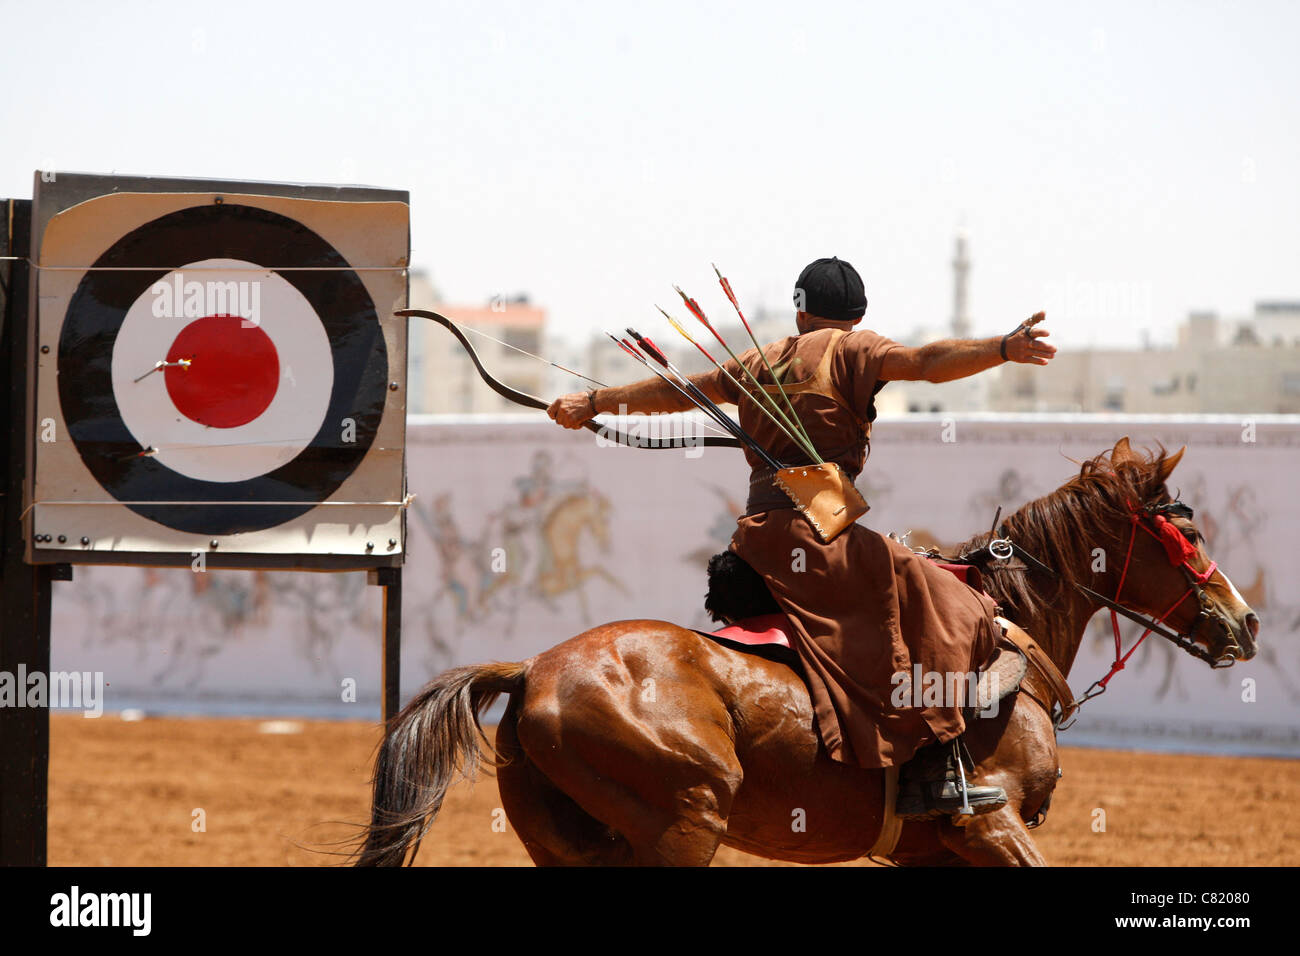 Participant compete competition horseback archery man horse - Stock Image